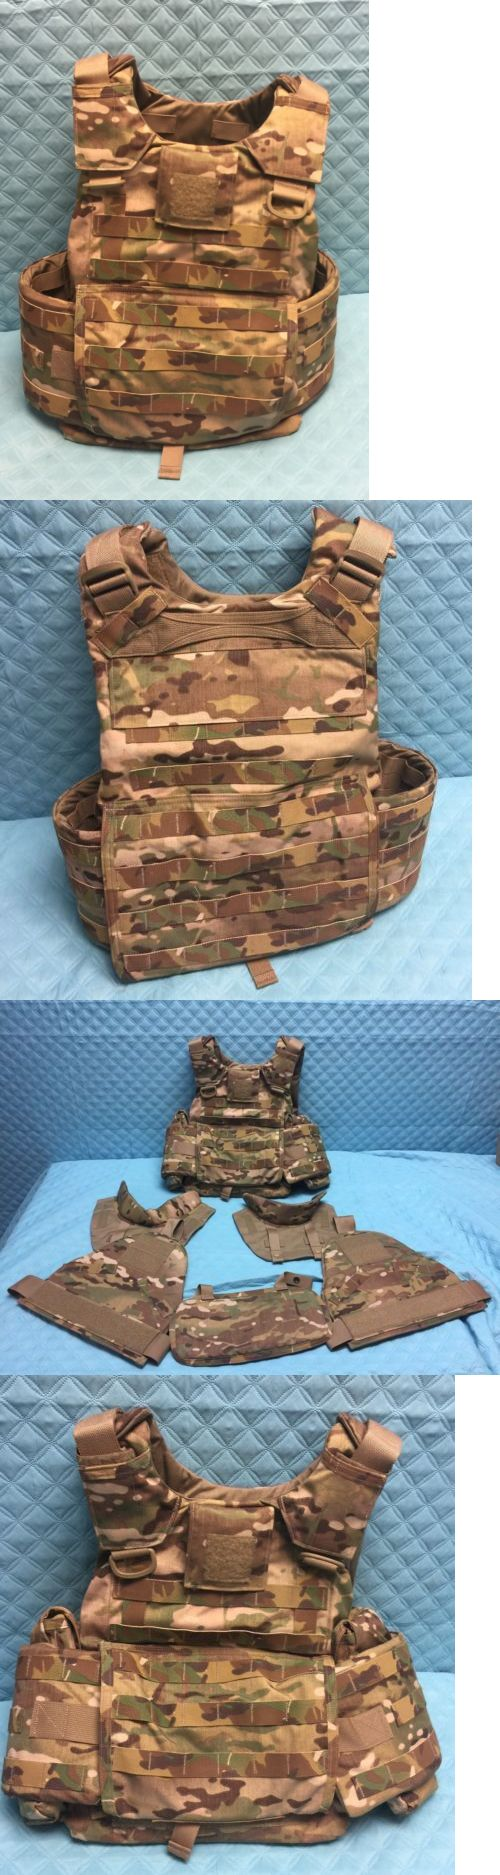 Chest Rigs and Tactical Vests 177891: New Medium Multicam Gen 4 Plate Carrier Qd Release Carter Ind. -> BUY IT NOW ONLY: $399.99 on eBay!